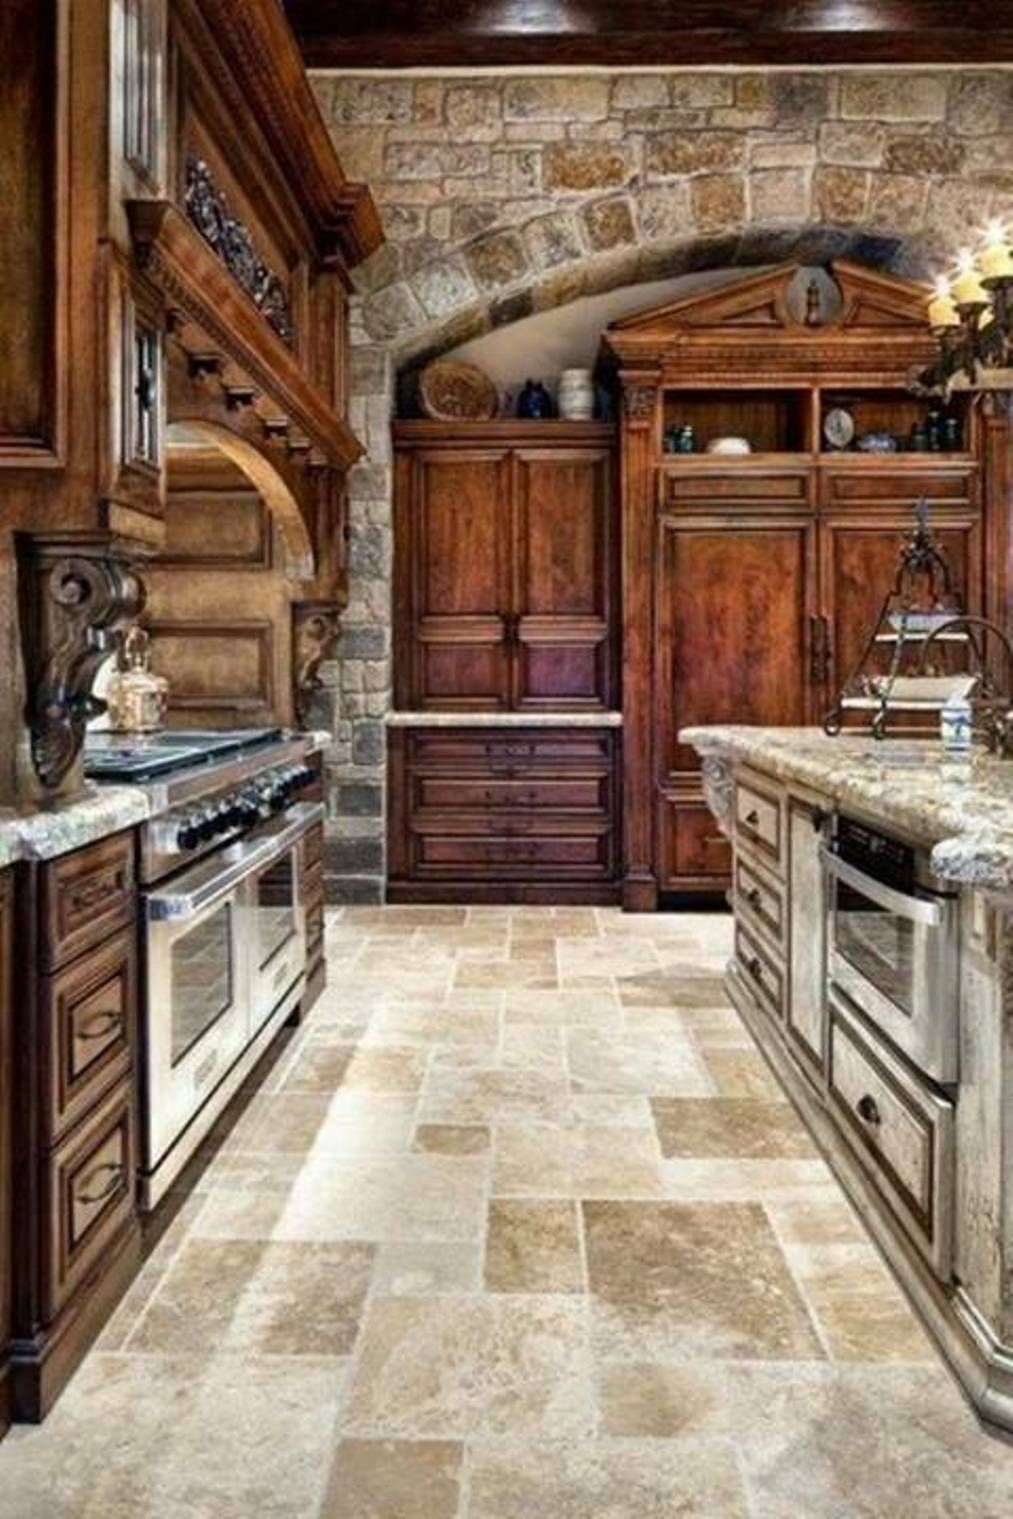 Rustic Kitchen Style Wooden Cabinets Stone Walls Country Kitchen Designs French Country Kitchen Rustic Kitchen